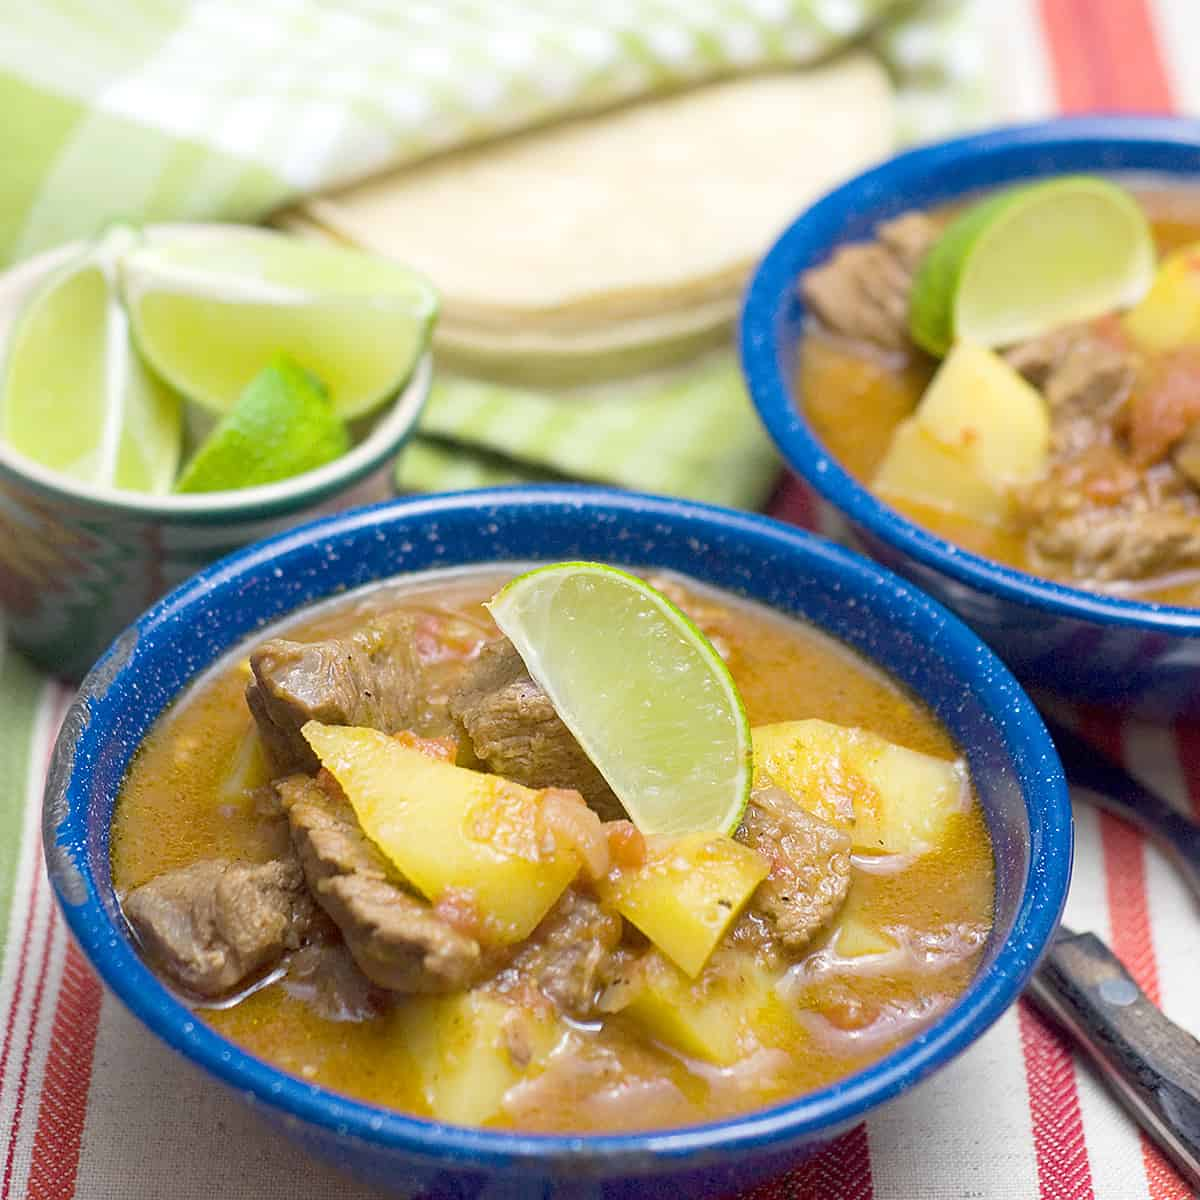 Two blue bowls filled with mexican beef stew (caldillo) with lime wedges and tortillas on the side.